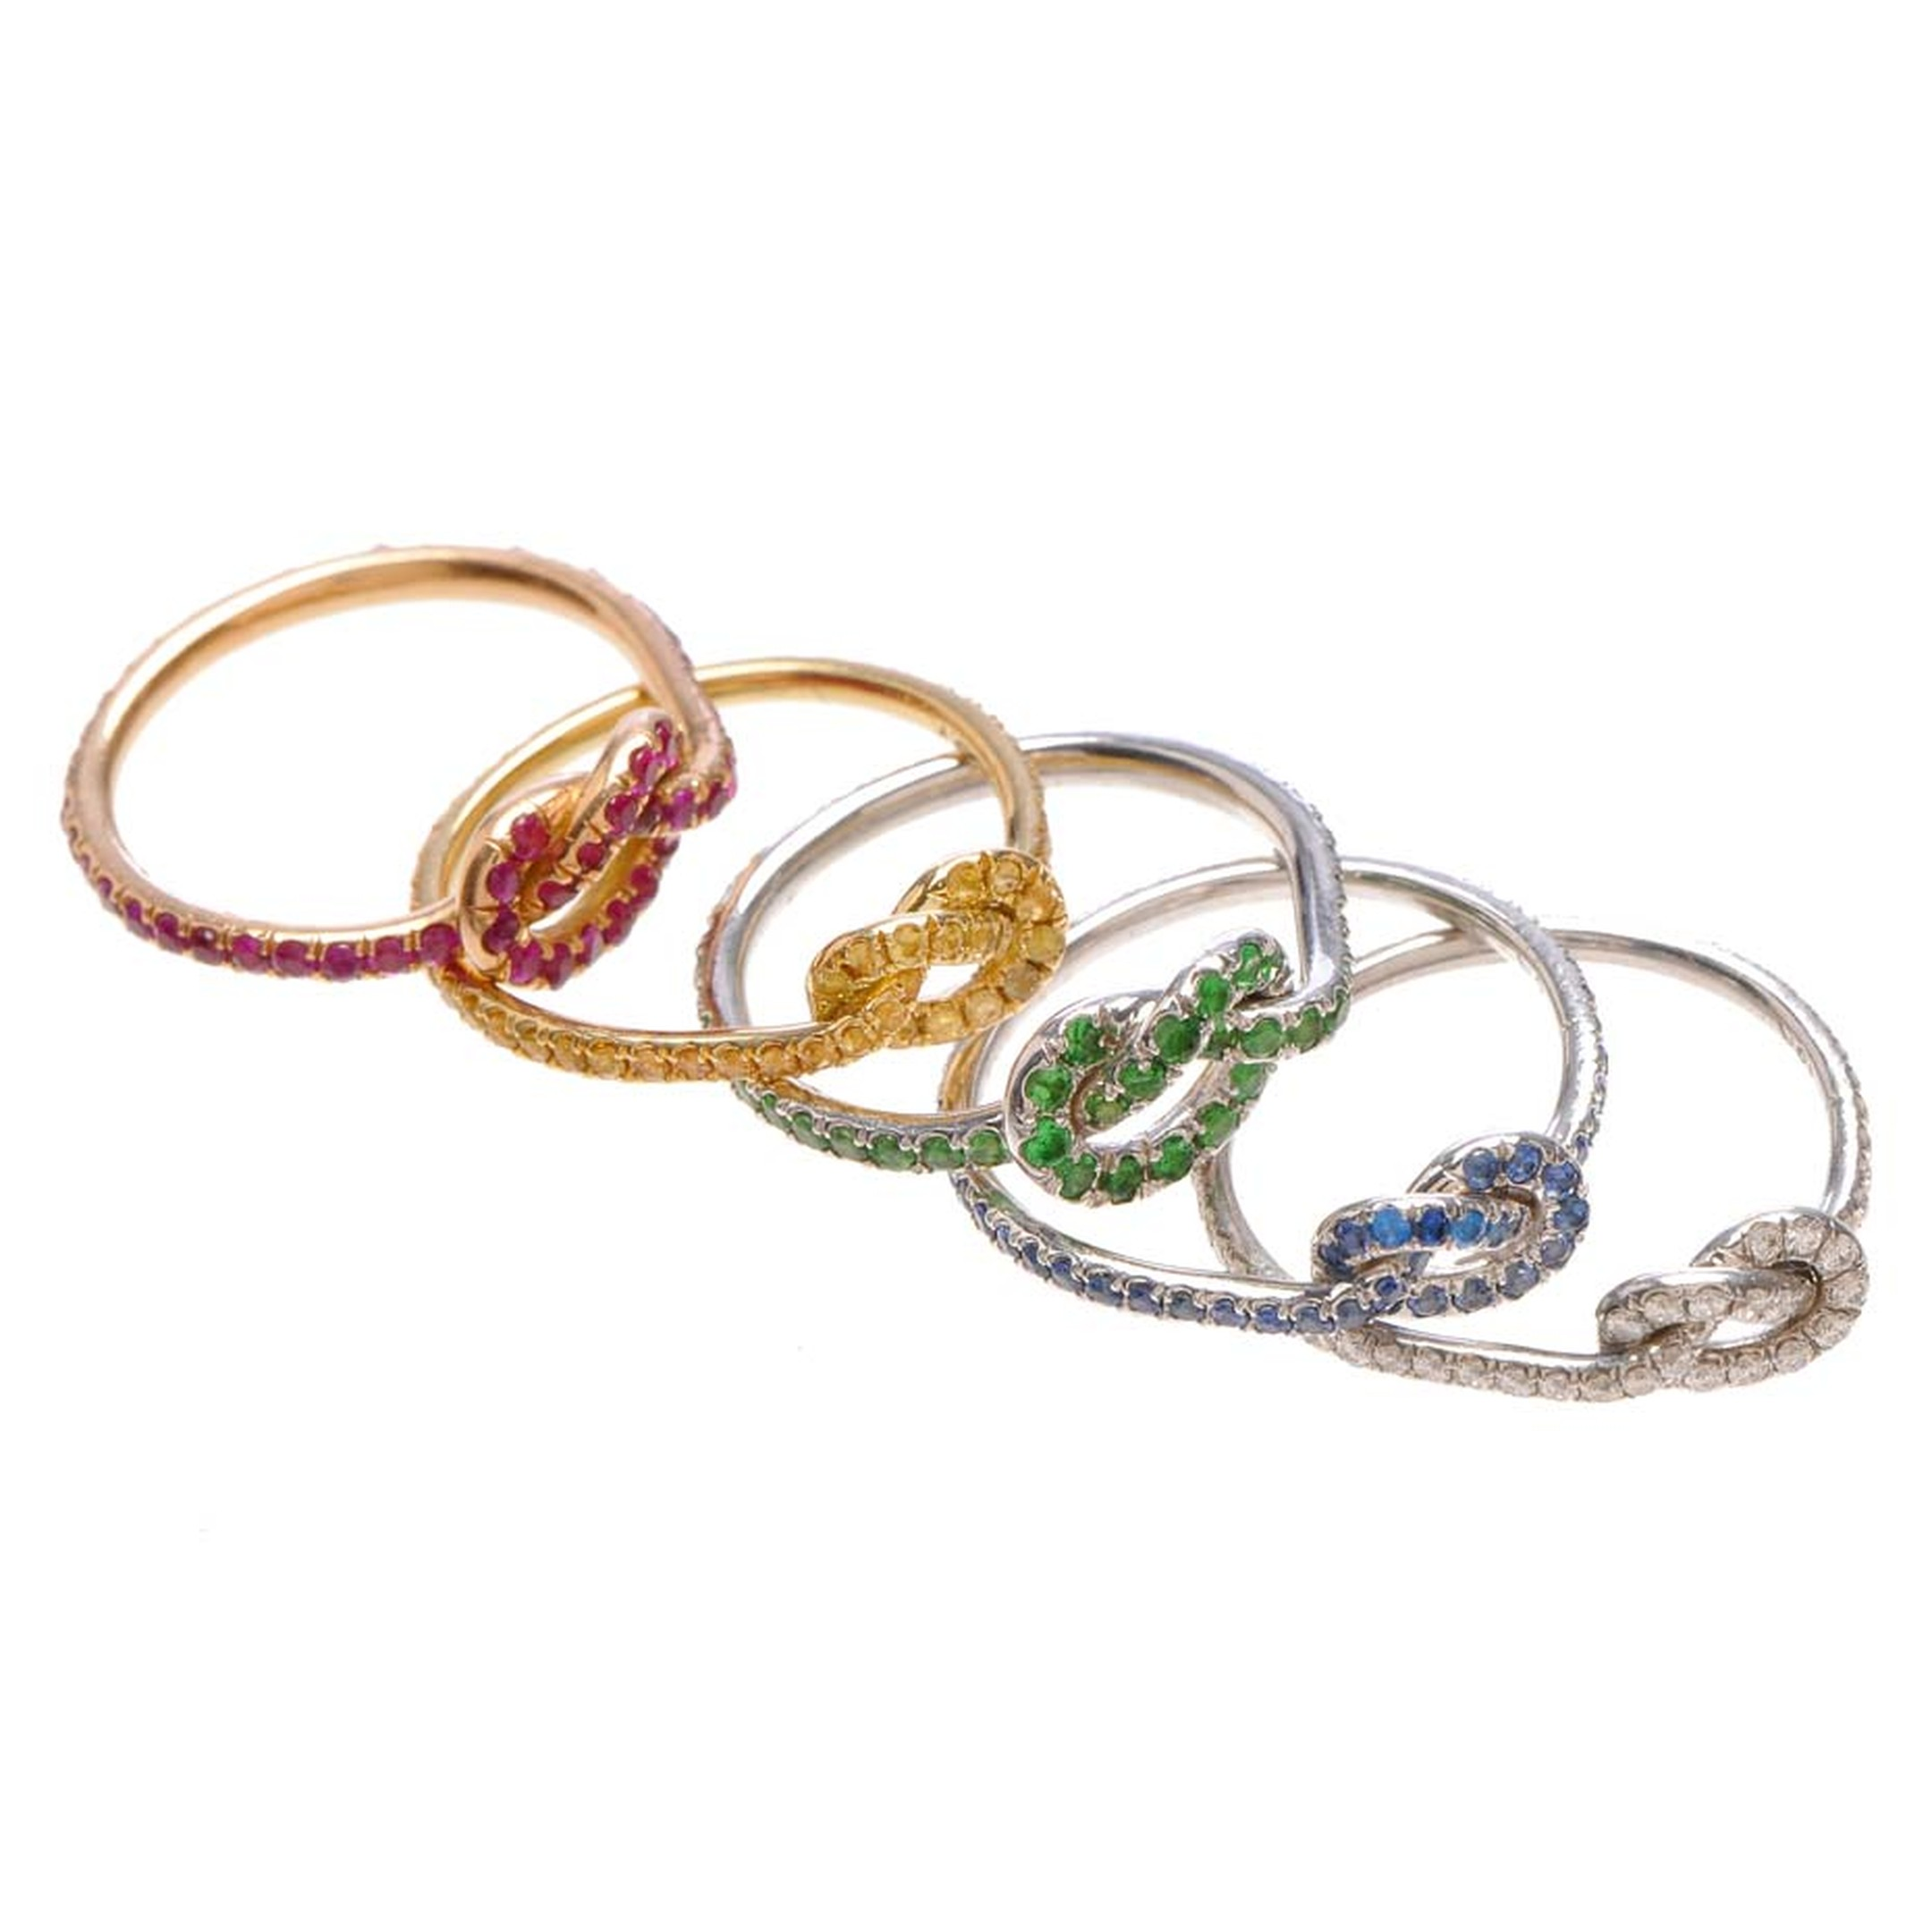 Finn Jewelry Love Knot rings available in a range of stackable hues.